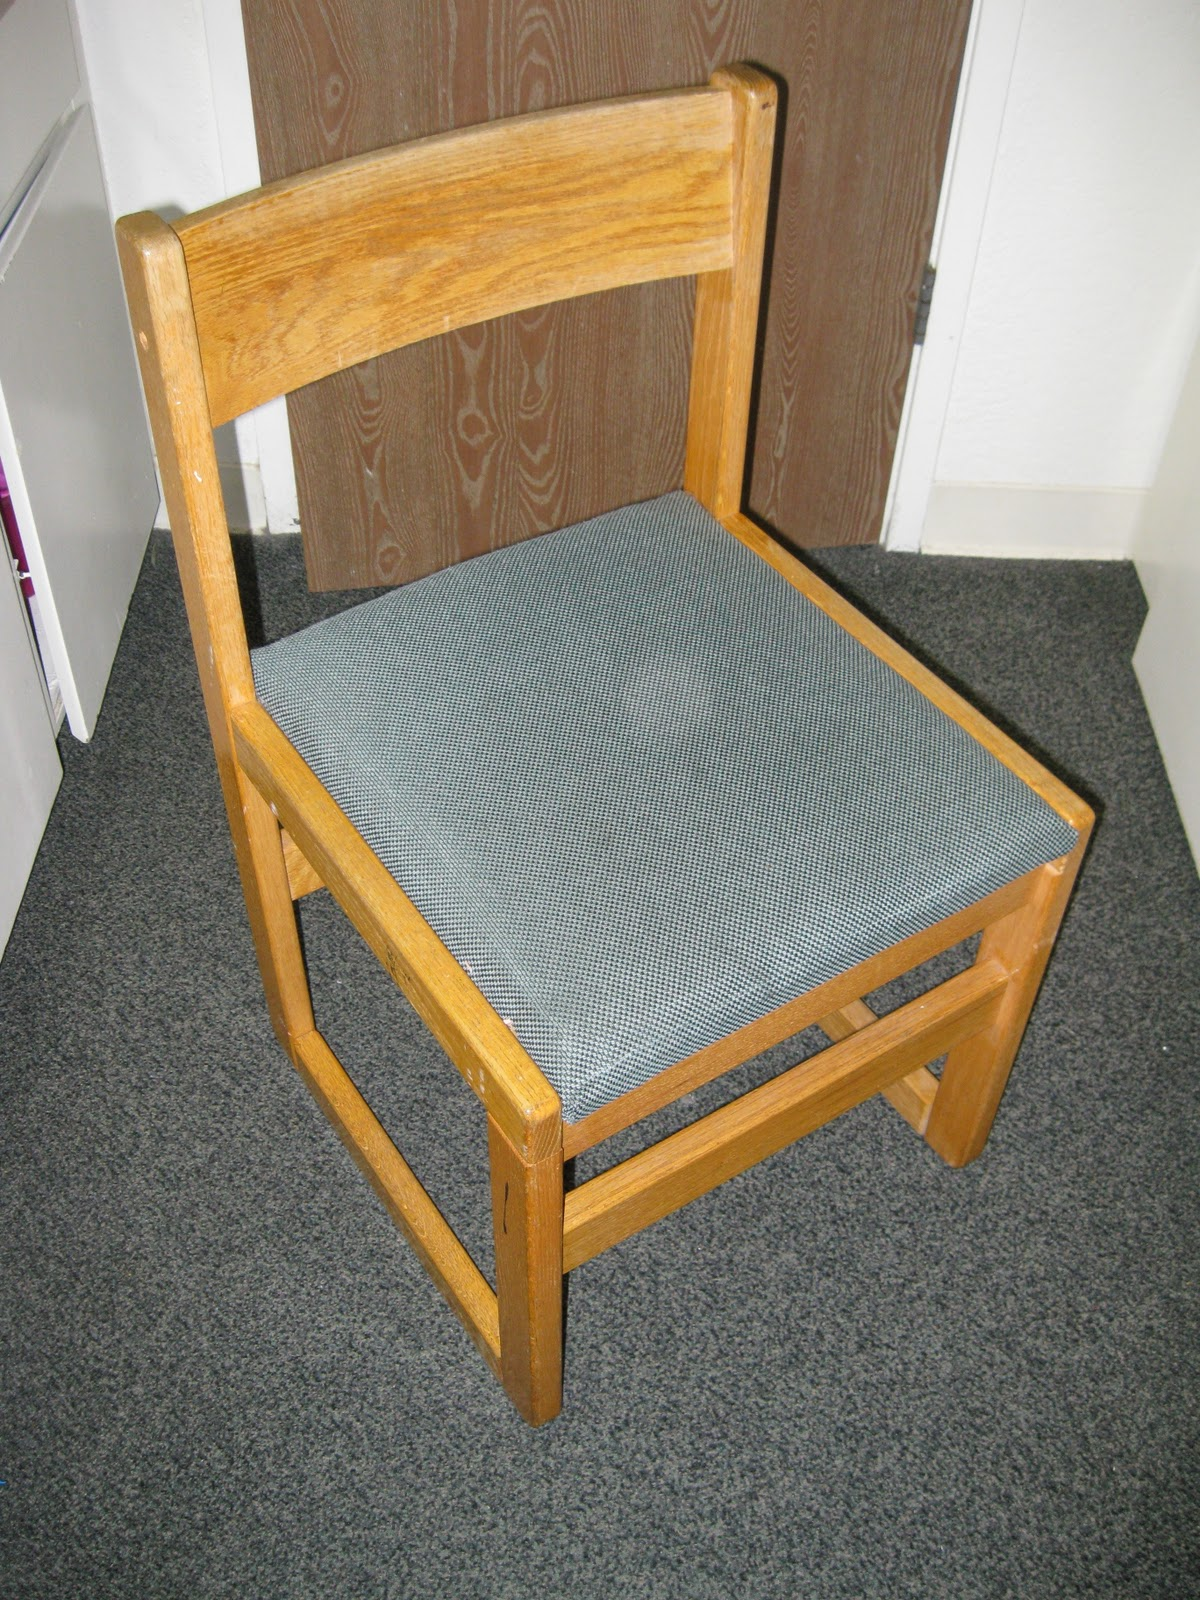 Dorm Room Chairs Creative By Design 5 Areas Of Ergonomics Dorm Room Desk